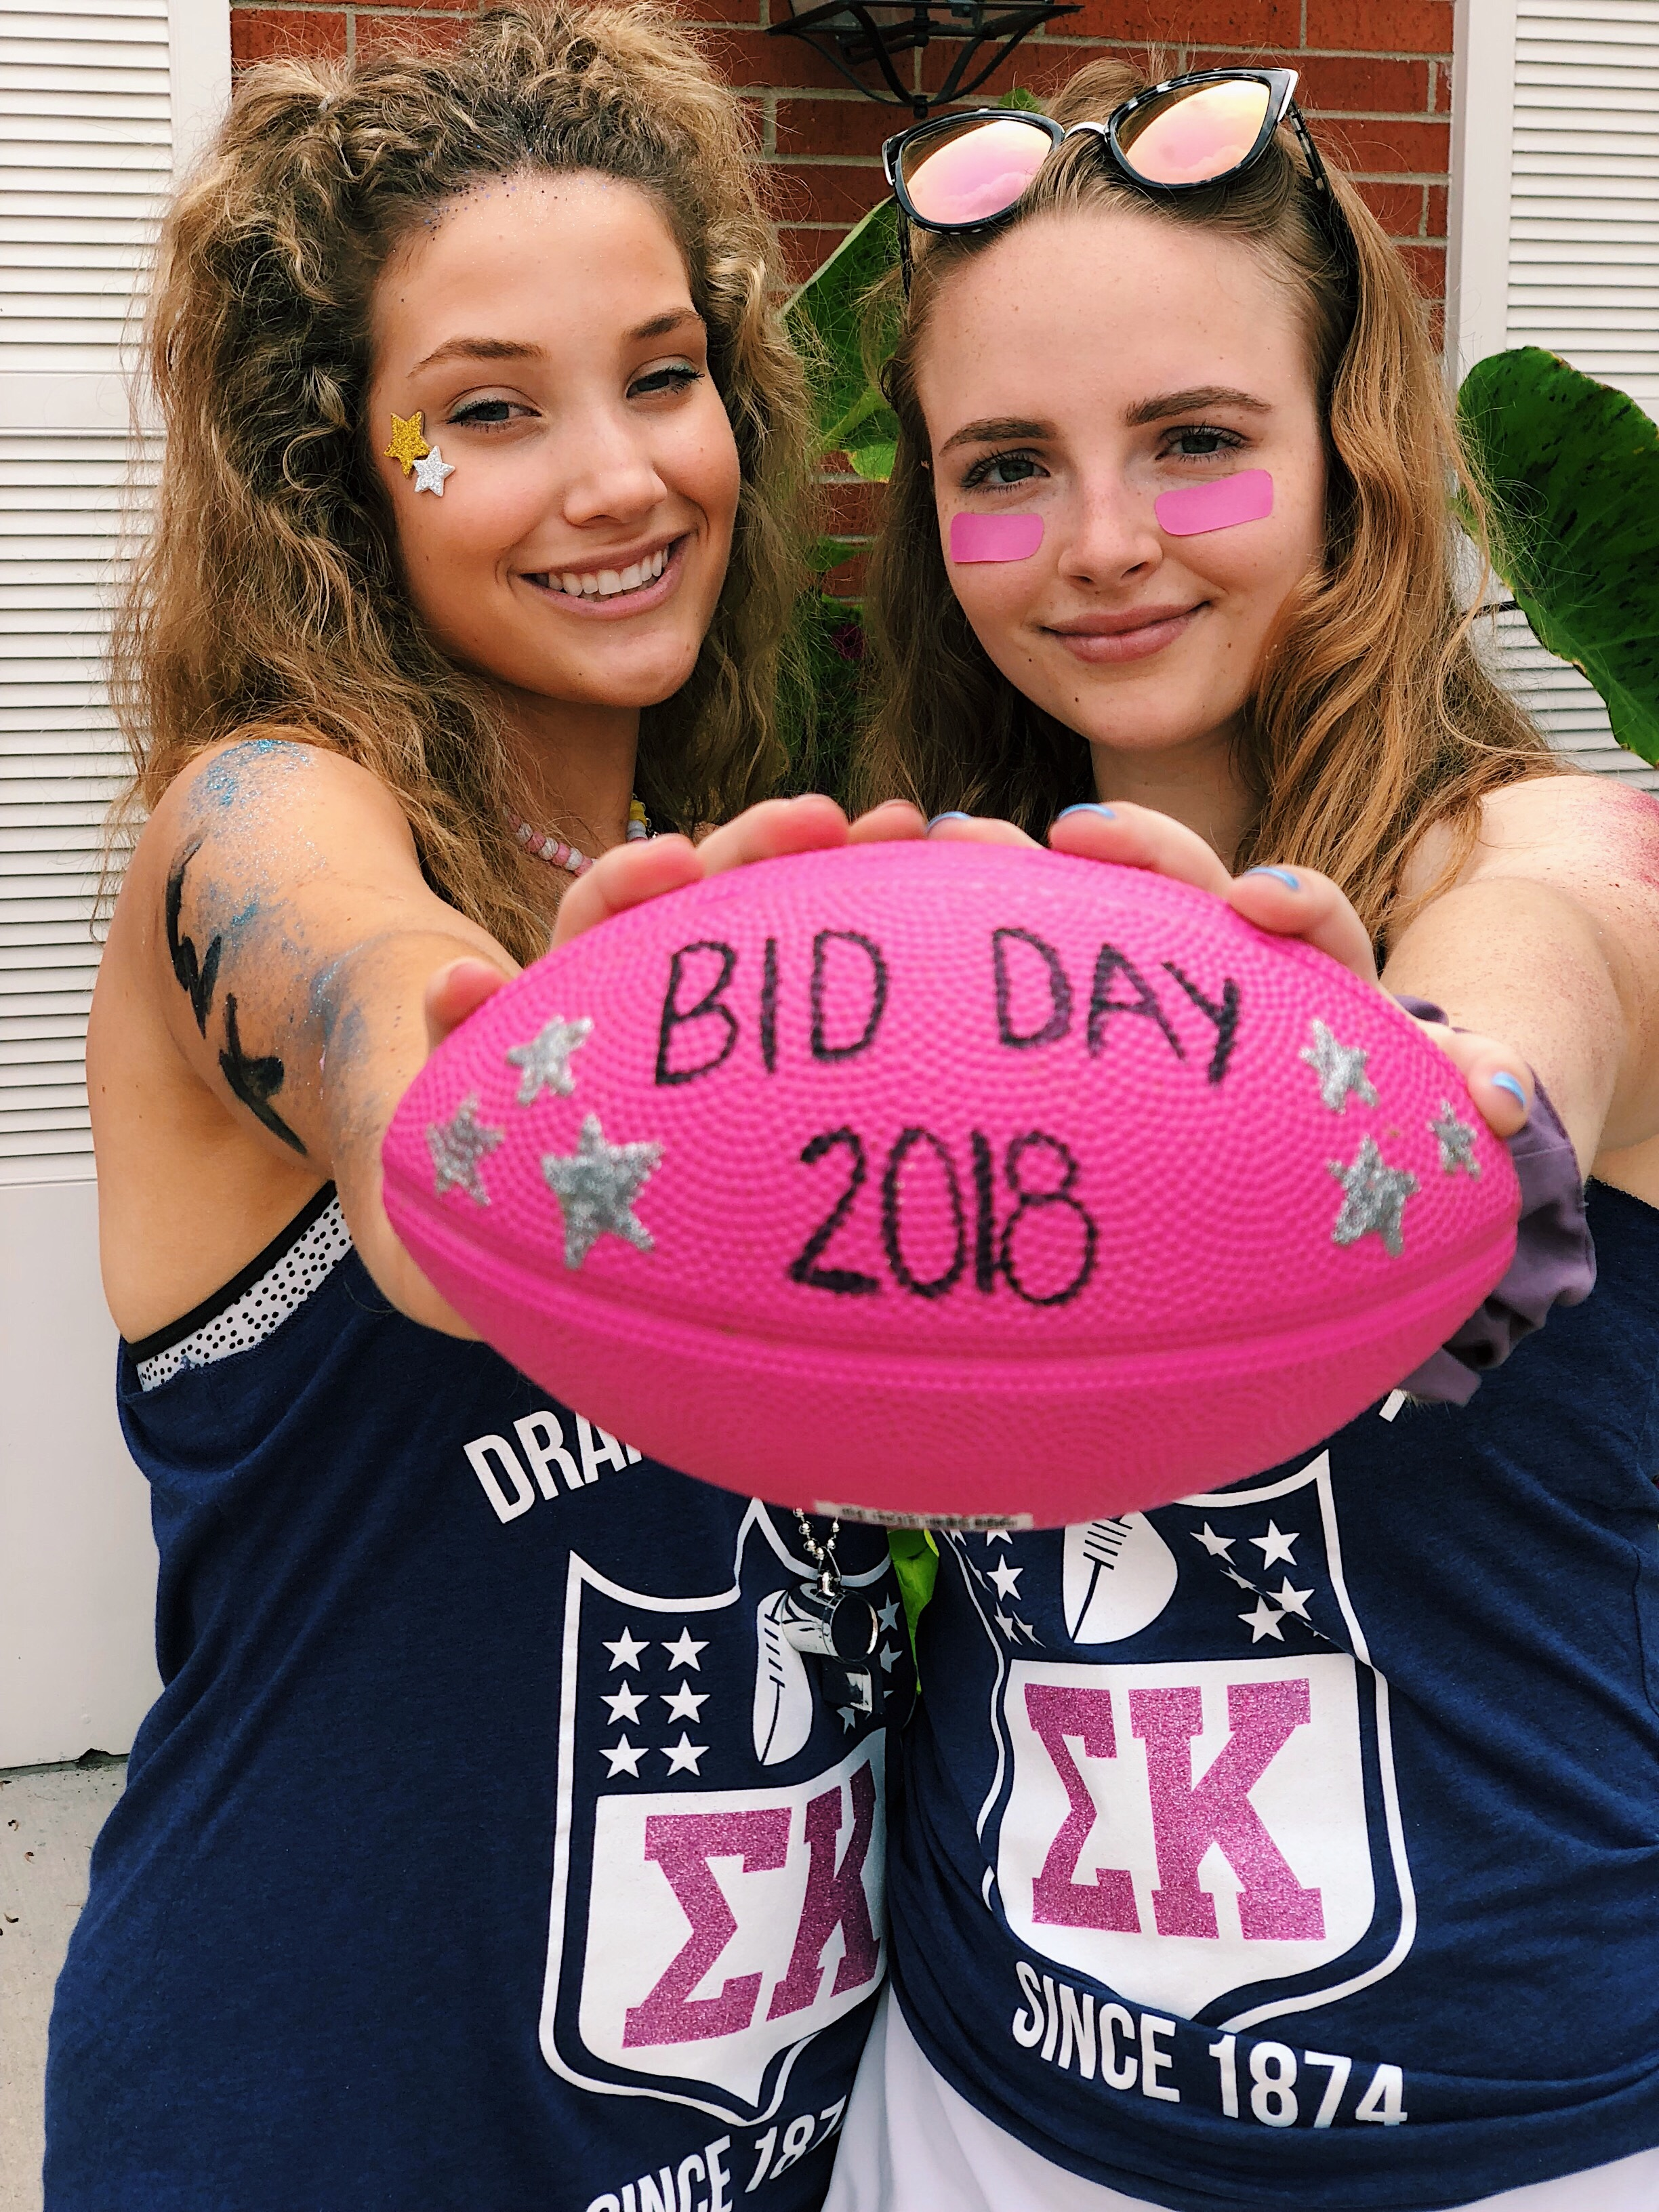 Bid Day Fall 2018